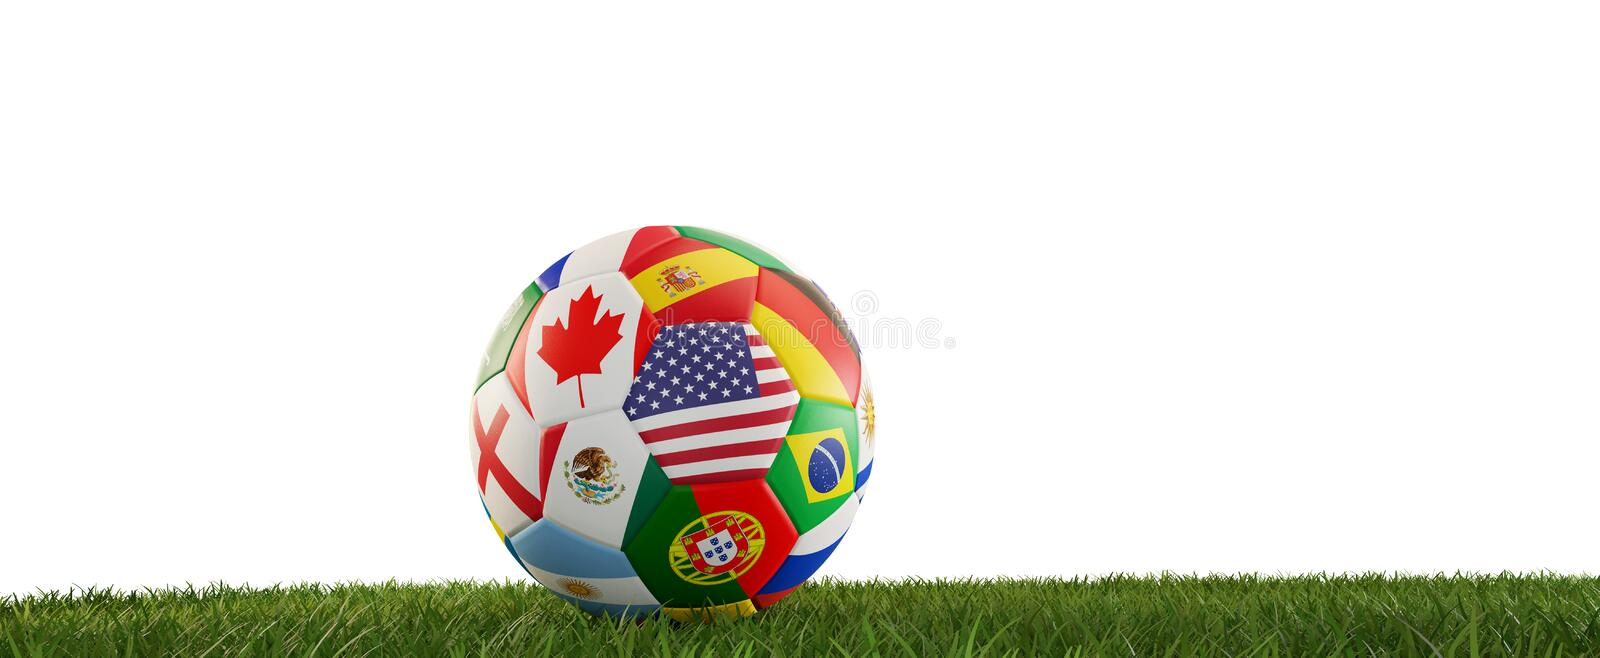 Soccer ball flags design with America and other 3d-illustration vector illustration